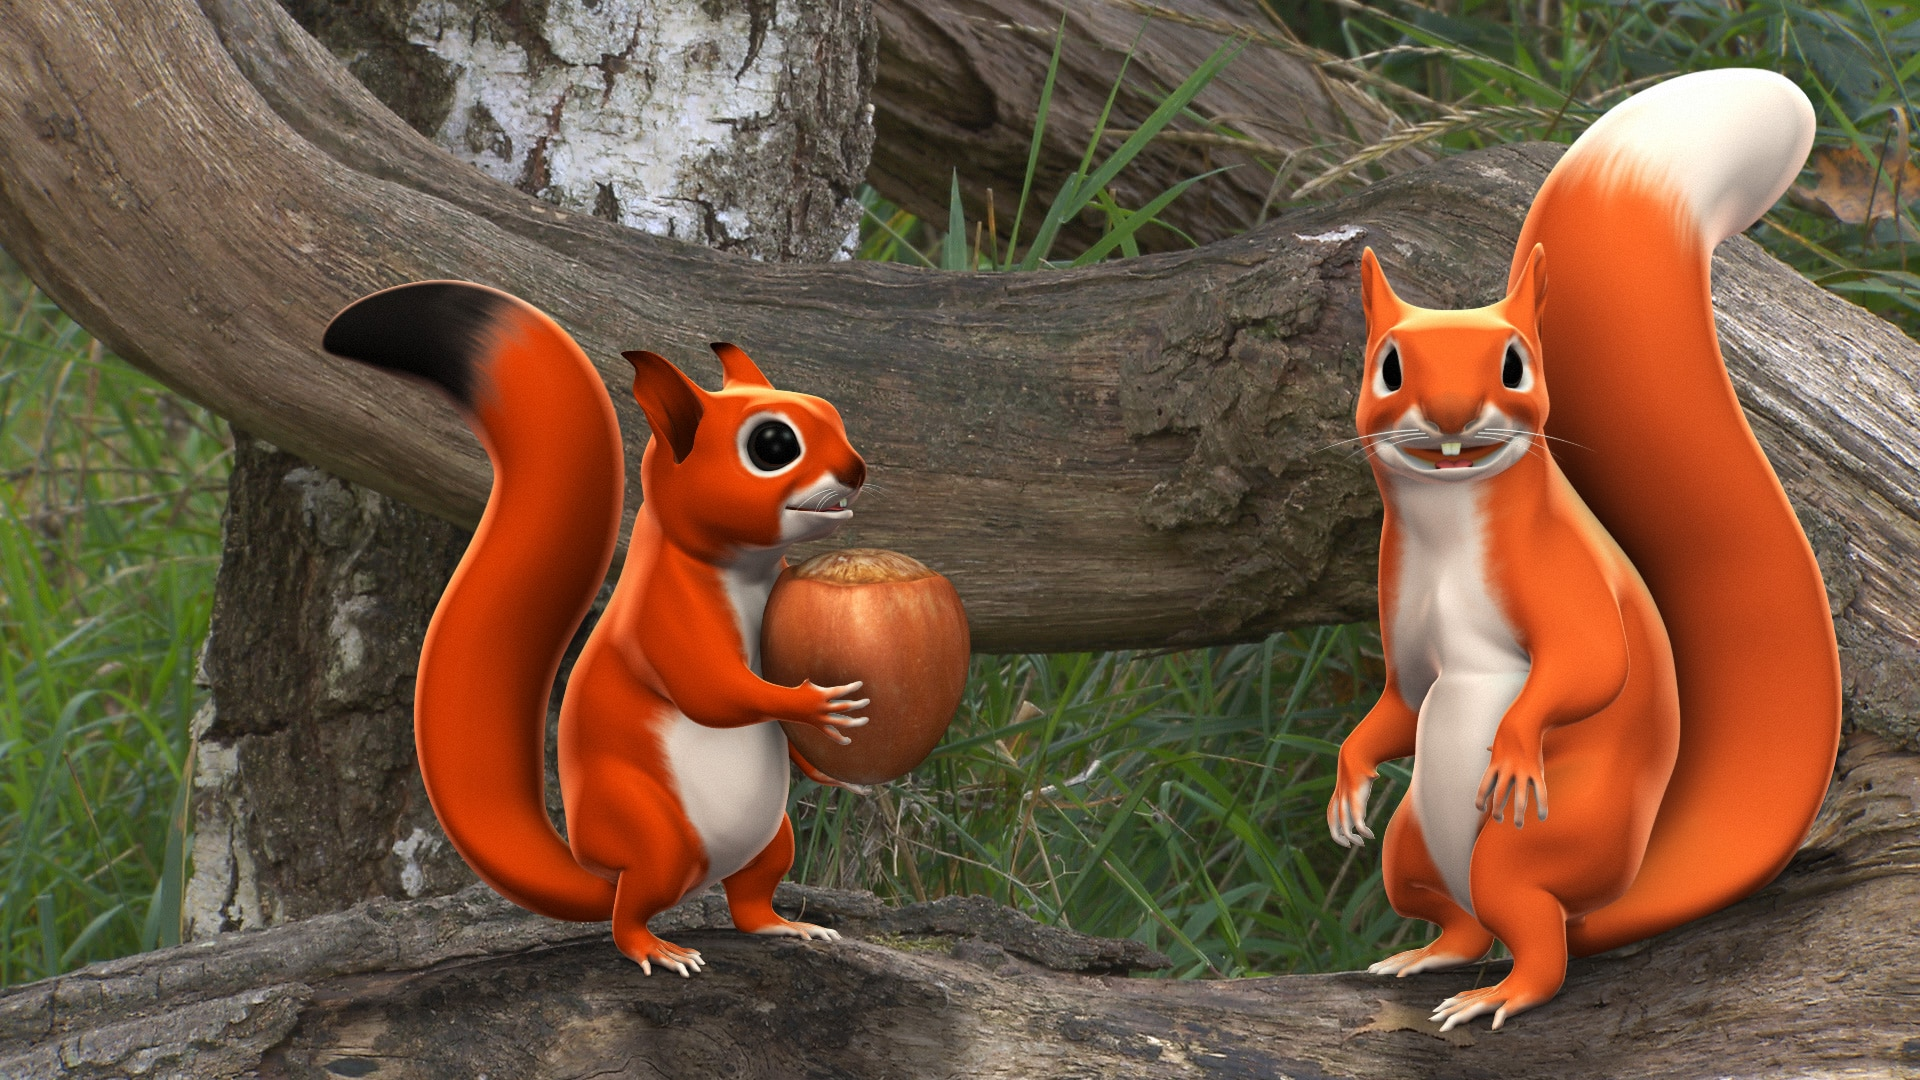 Pip and pip Squeak 3d animated squirrels